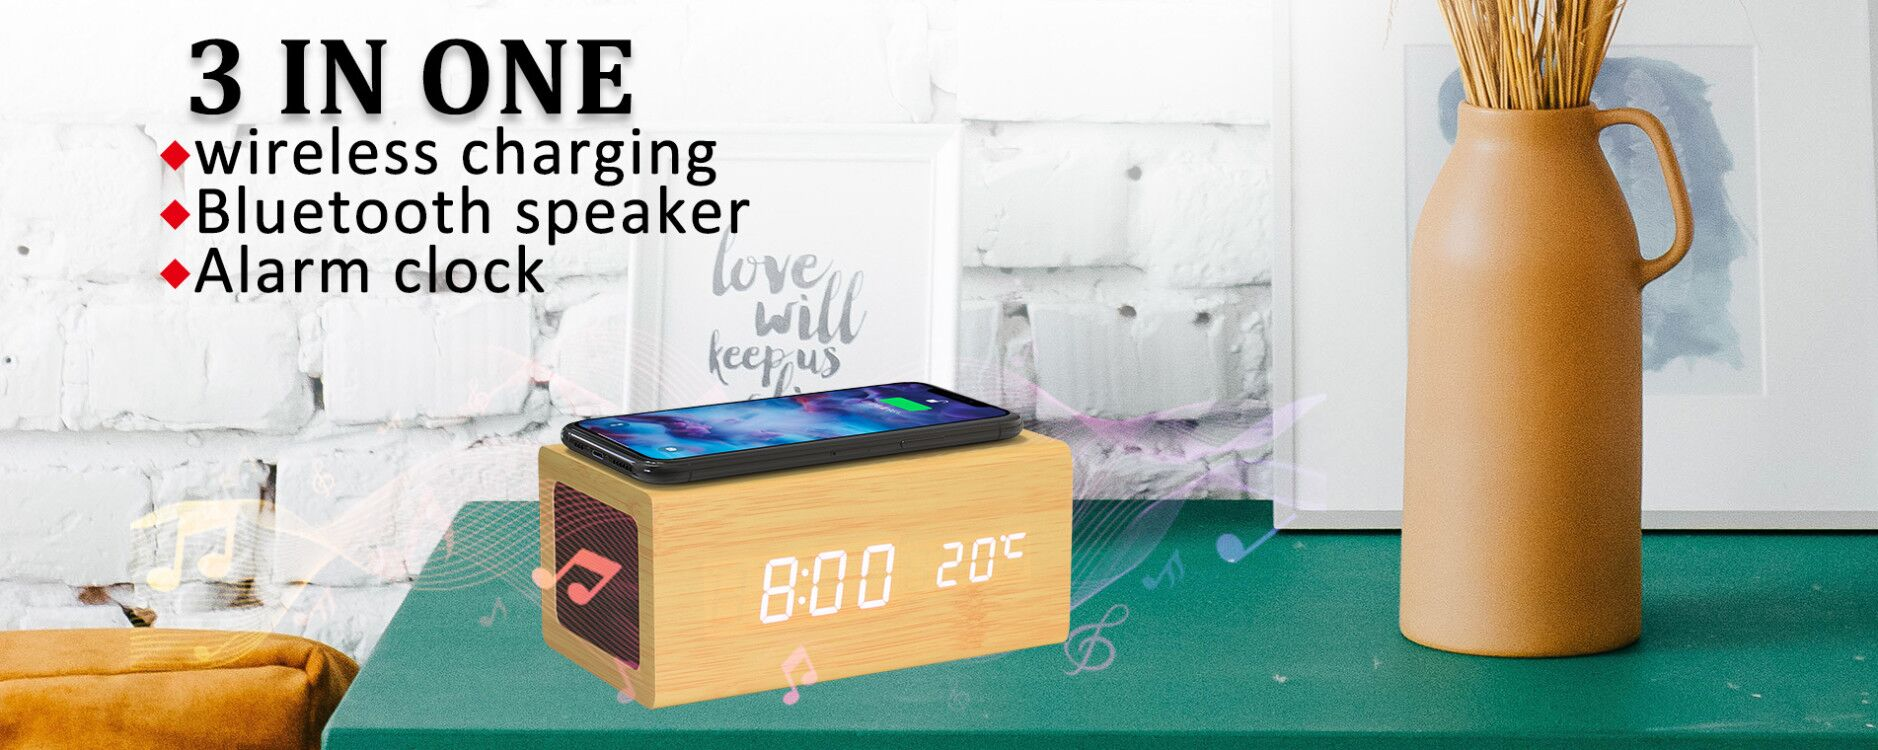 bluetooth speaker wireless charging alarm clock